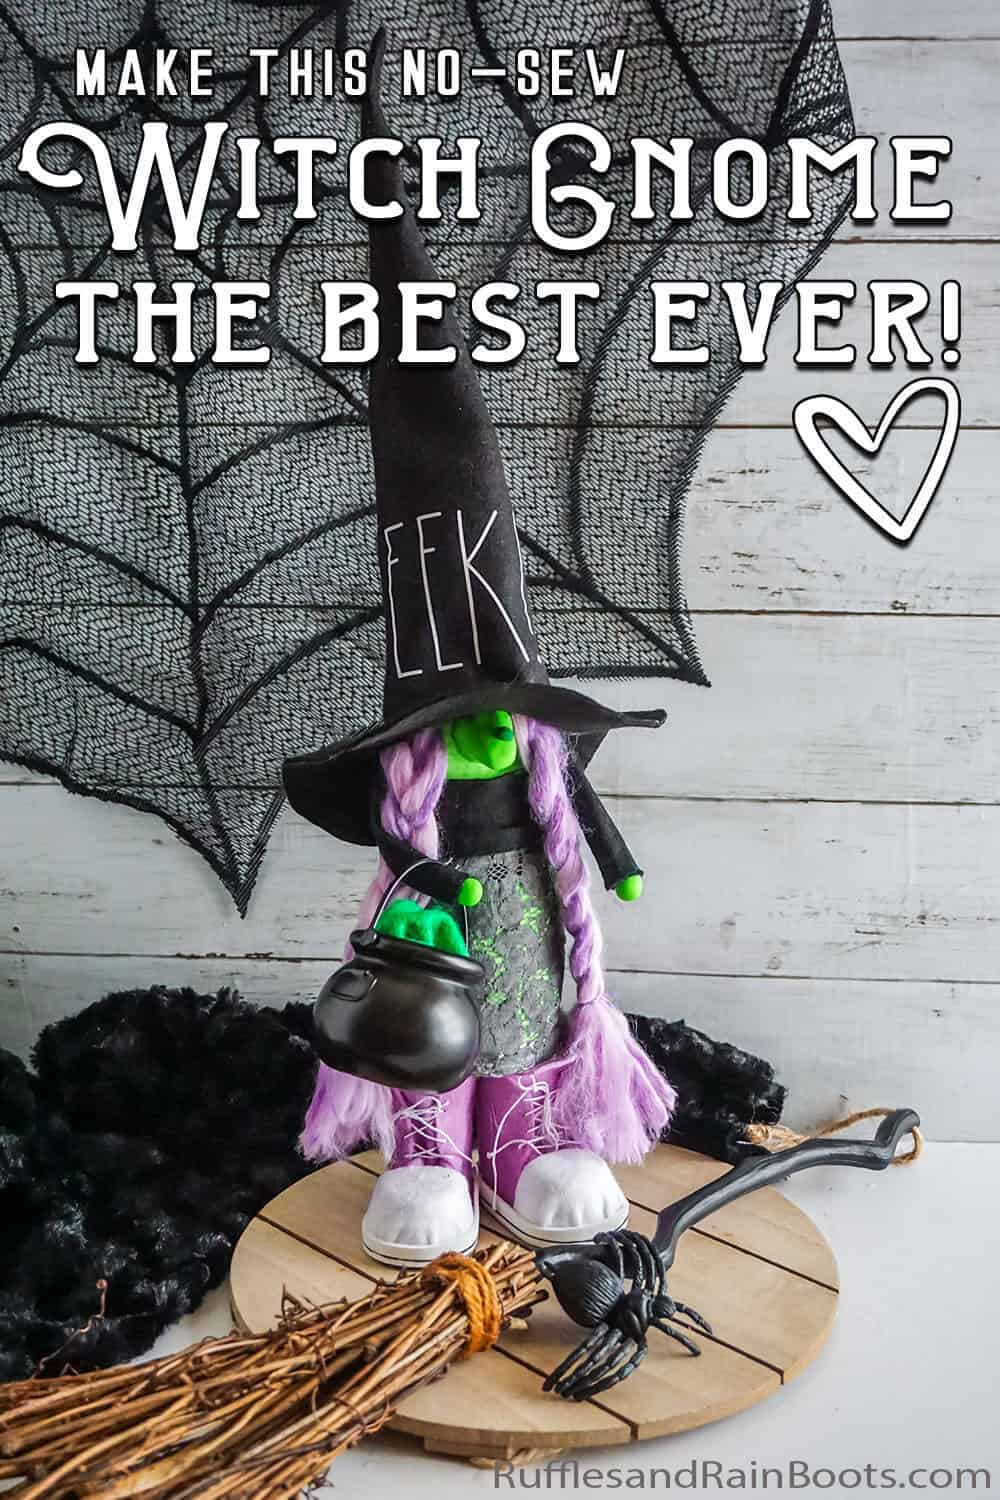 DIY no-sew gnome pattern for farmhouse halloween gnome with text which reads make this no-sew witch gnome the best ever!